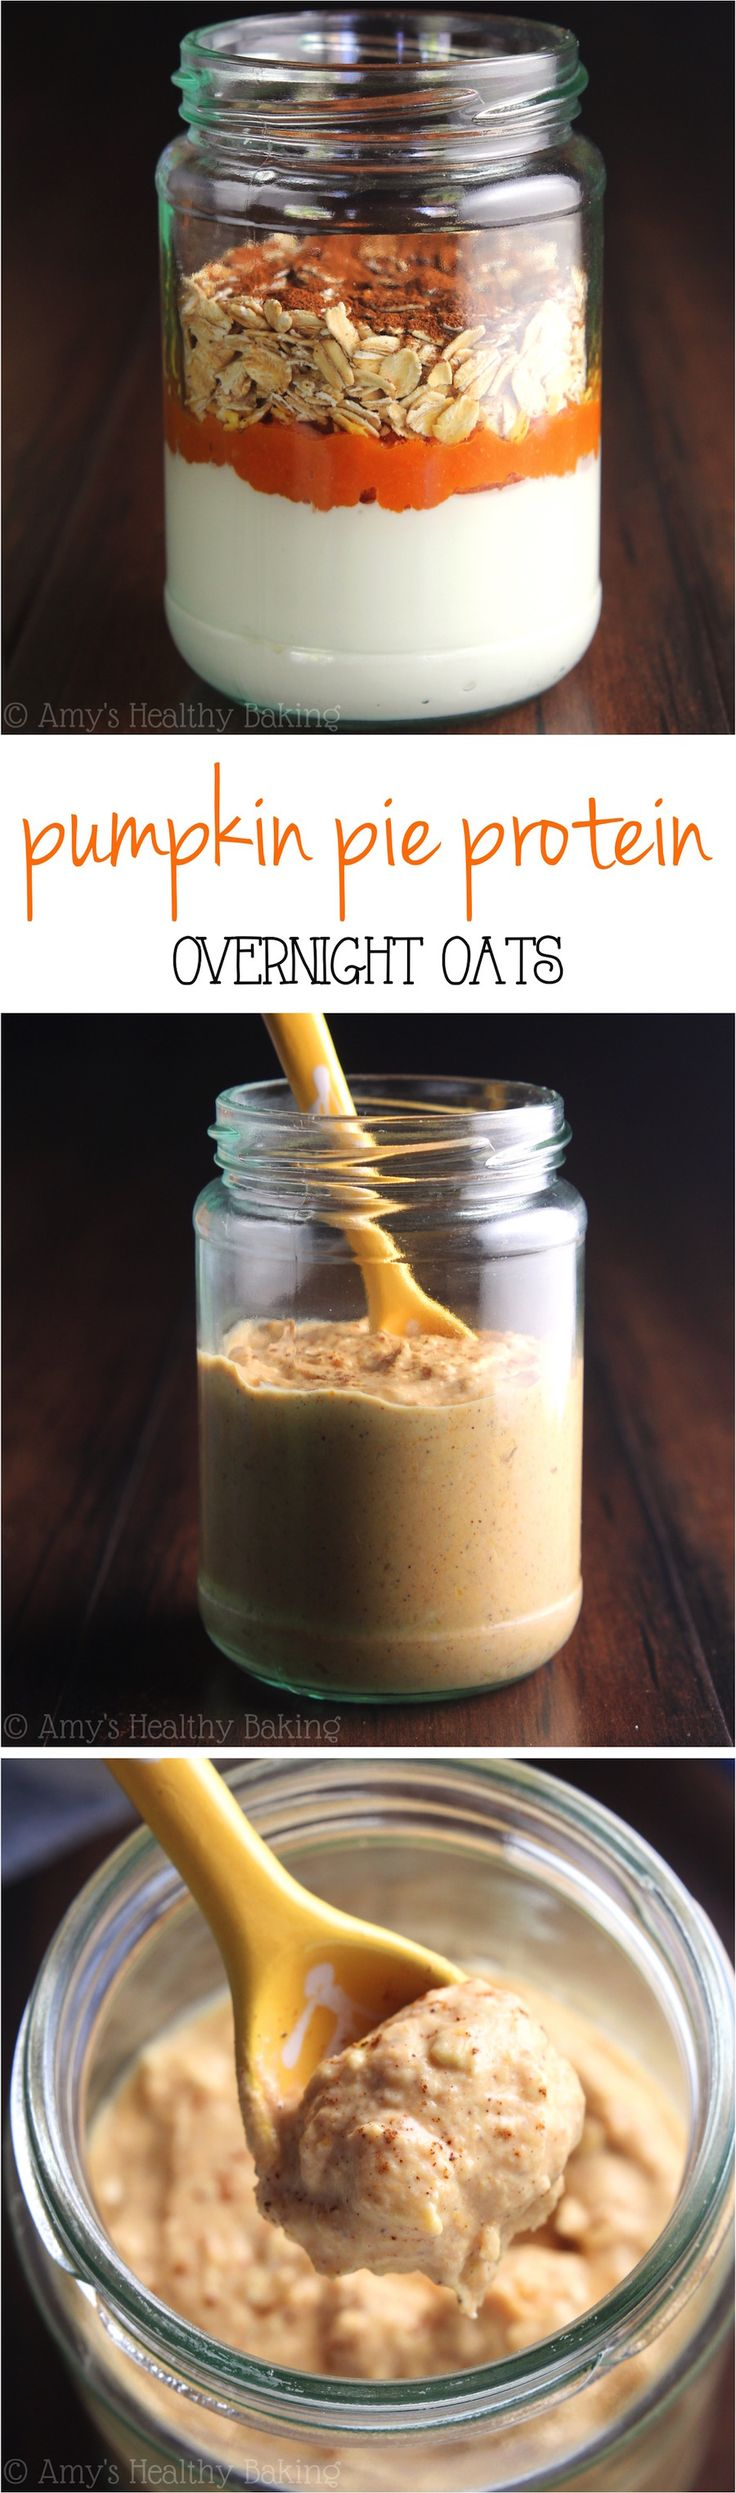 Pumpkin Pie Protein Overnight Oats // 5 healthy ingredients & 16g of protein #fall